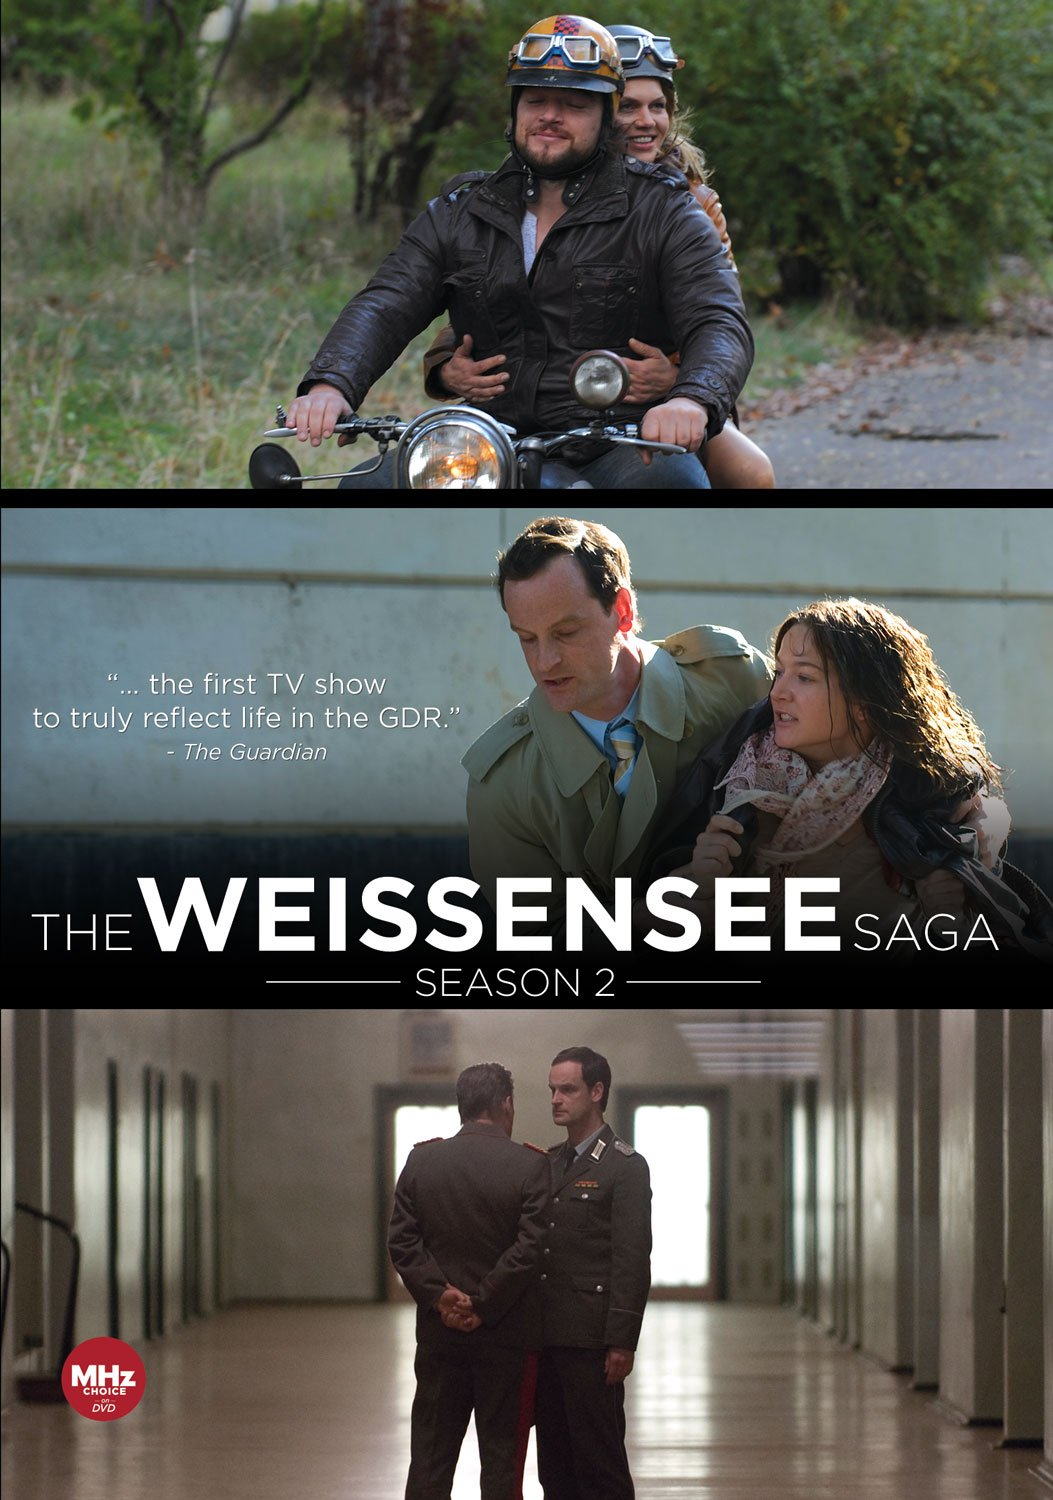 The Weissensee Saga: Season 2